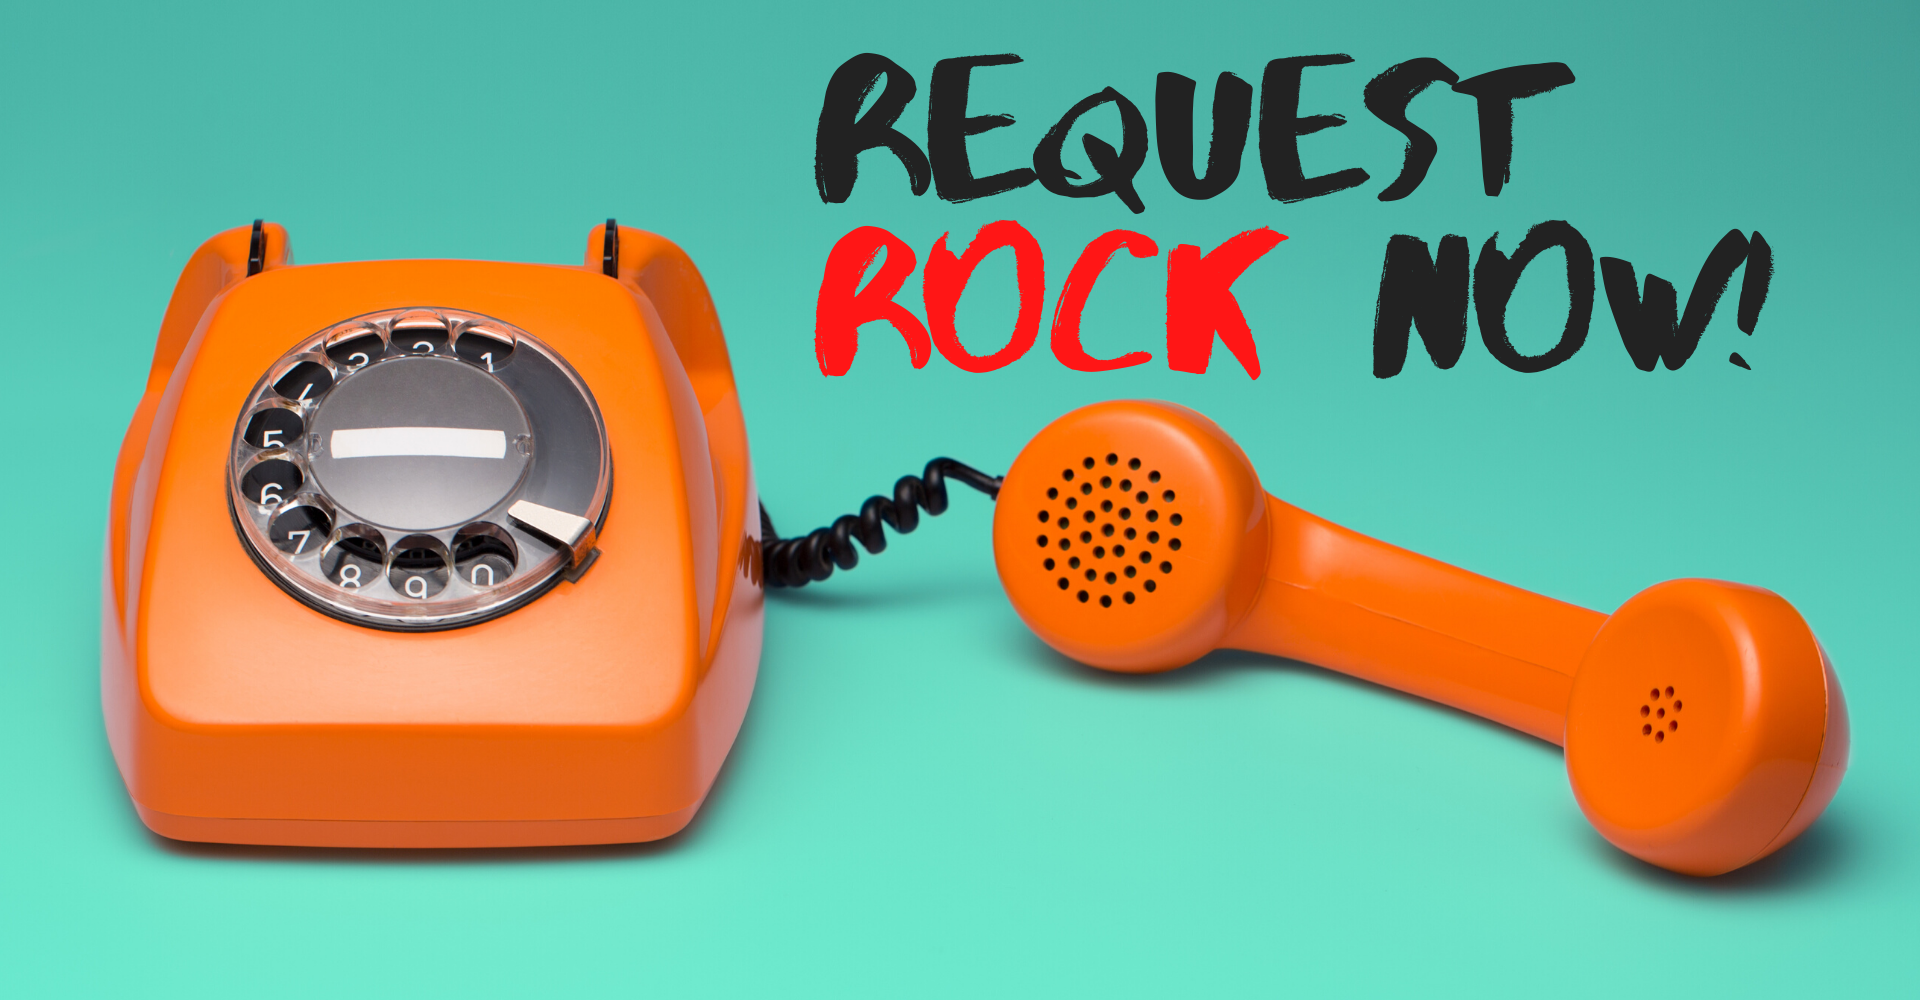 Request Rock NOW!